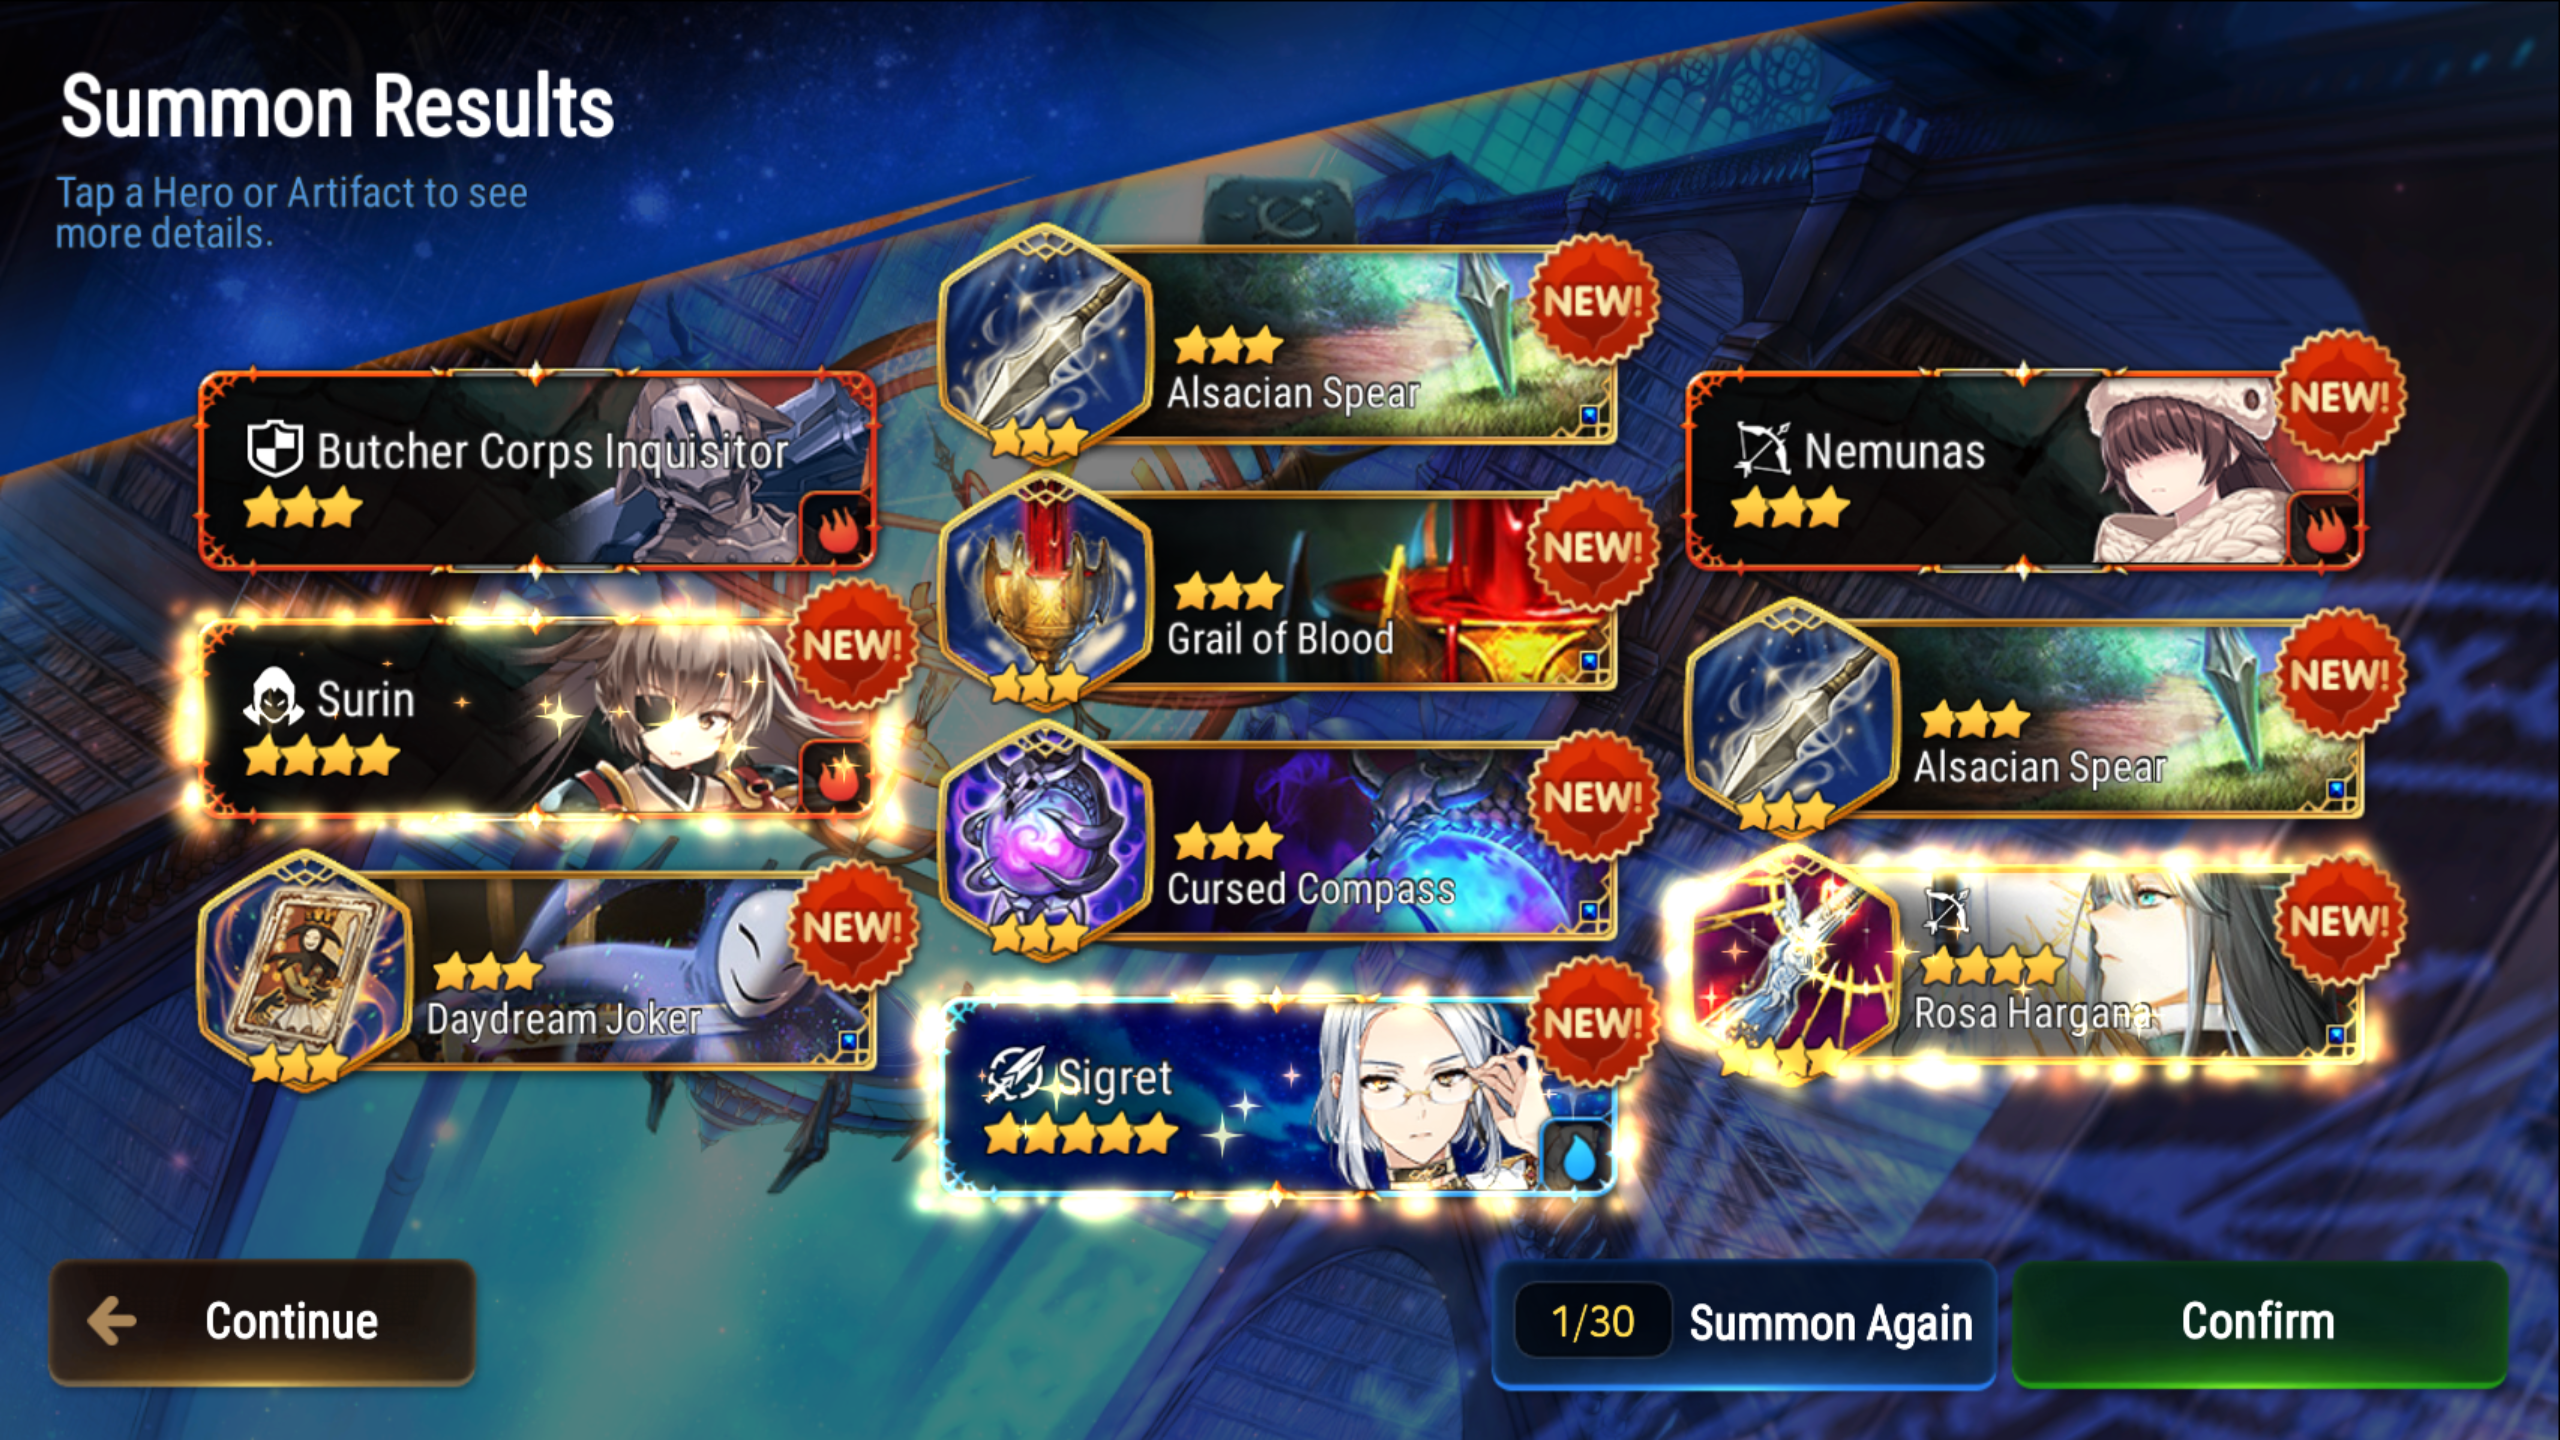 Epic Seven (Mobile/Mobage) |OT| 1 25% better than Dragalia Lost's